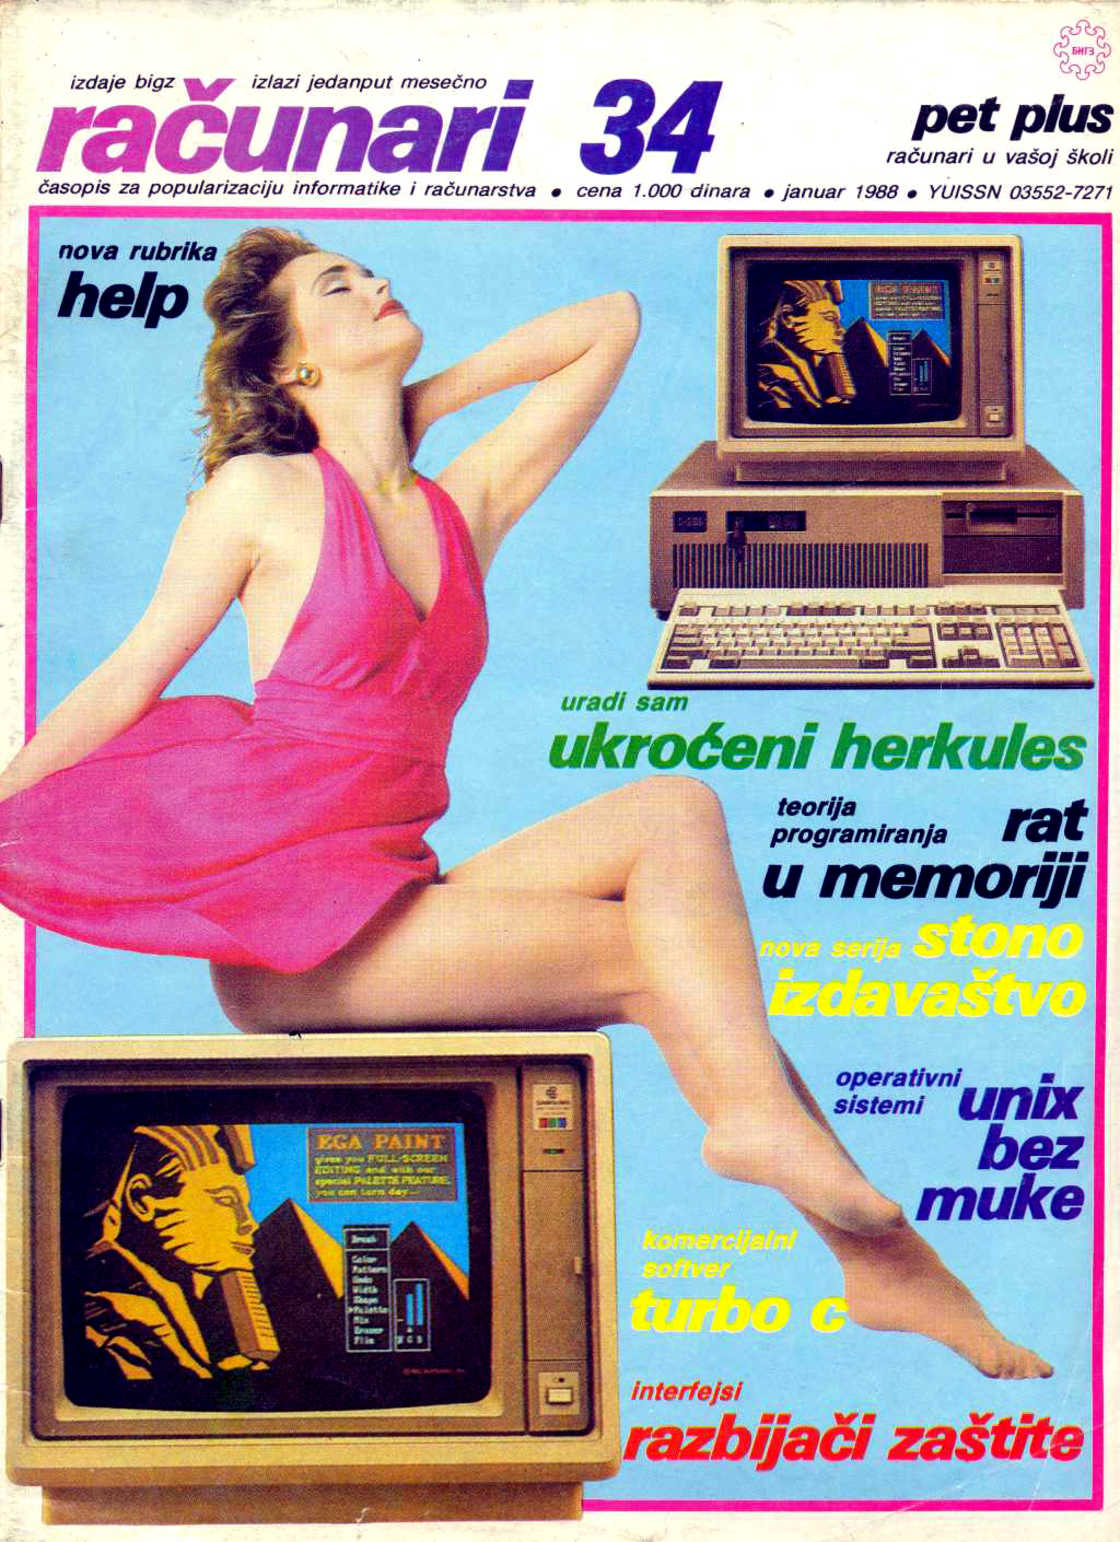 Vintage Pin-Ups and Computers - The magazine covers of the 1980s